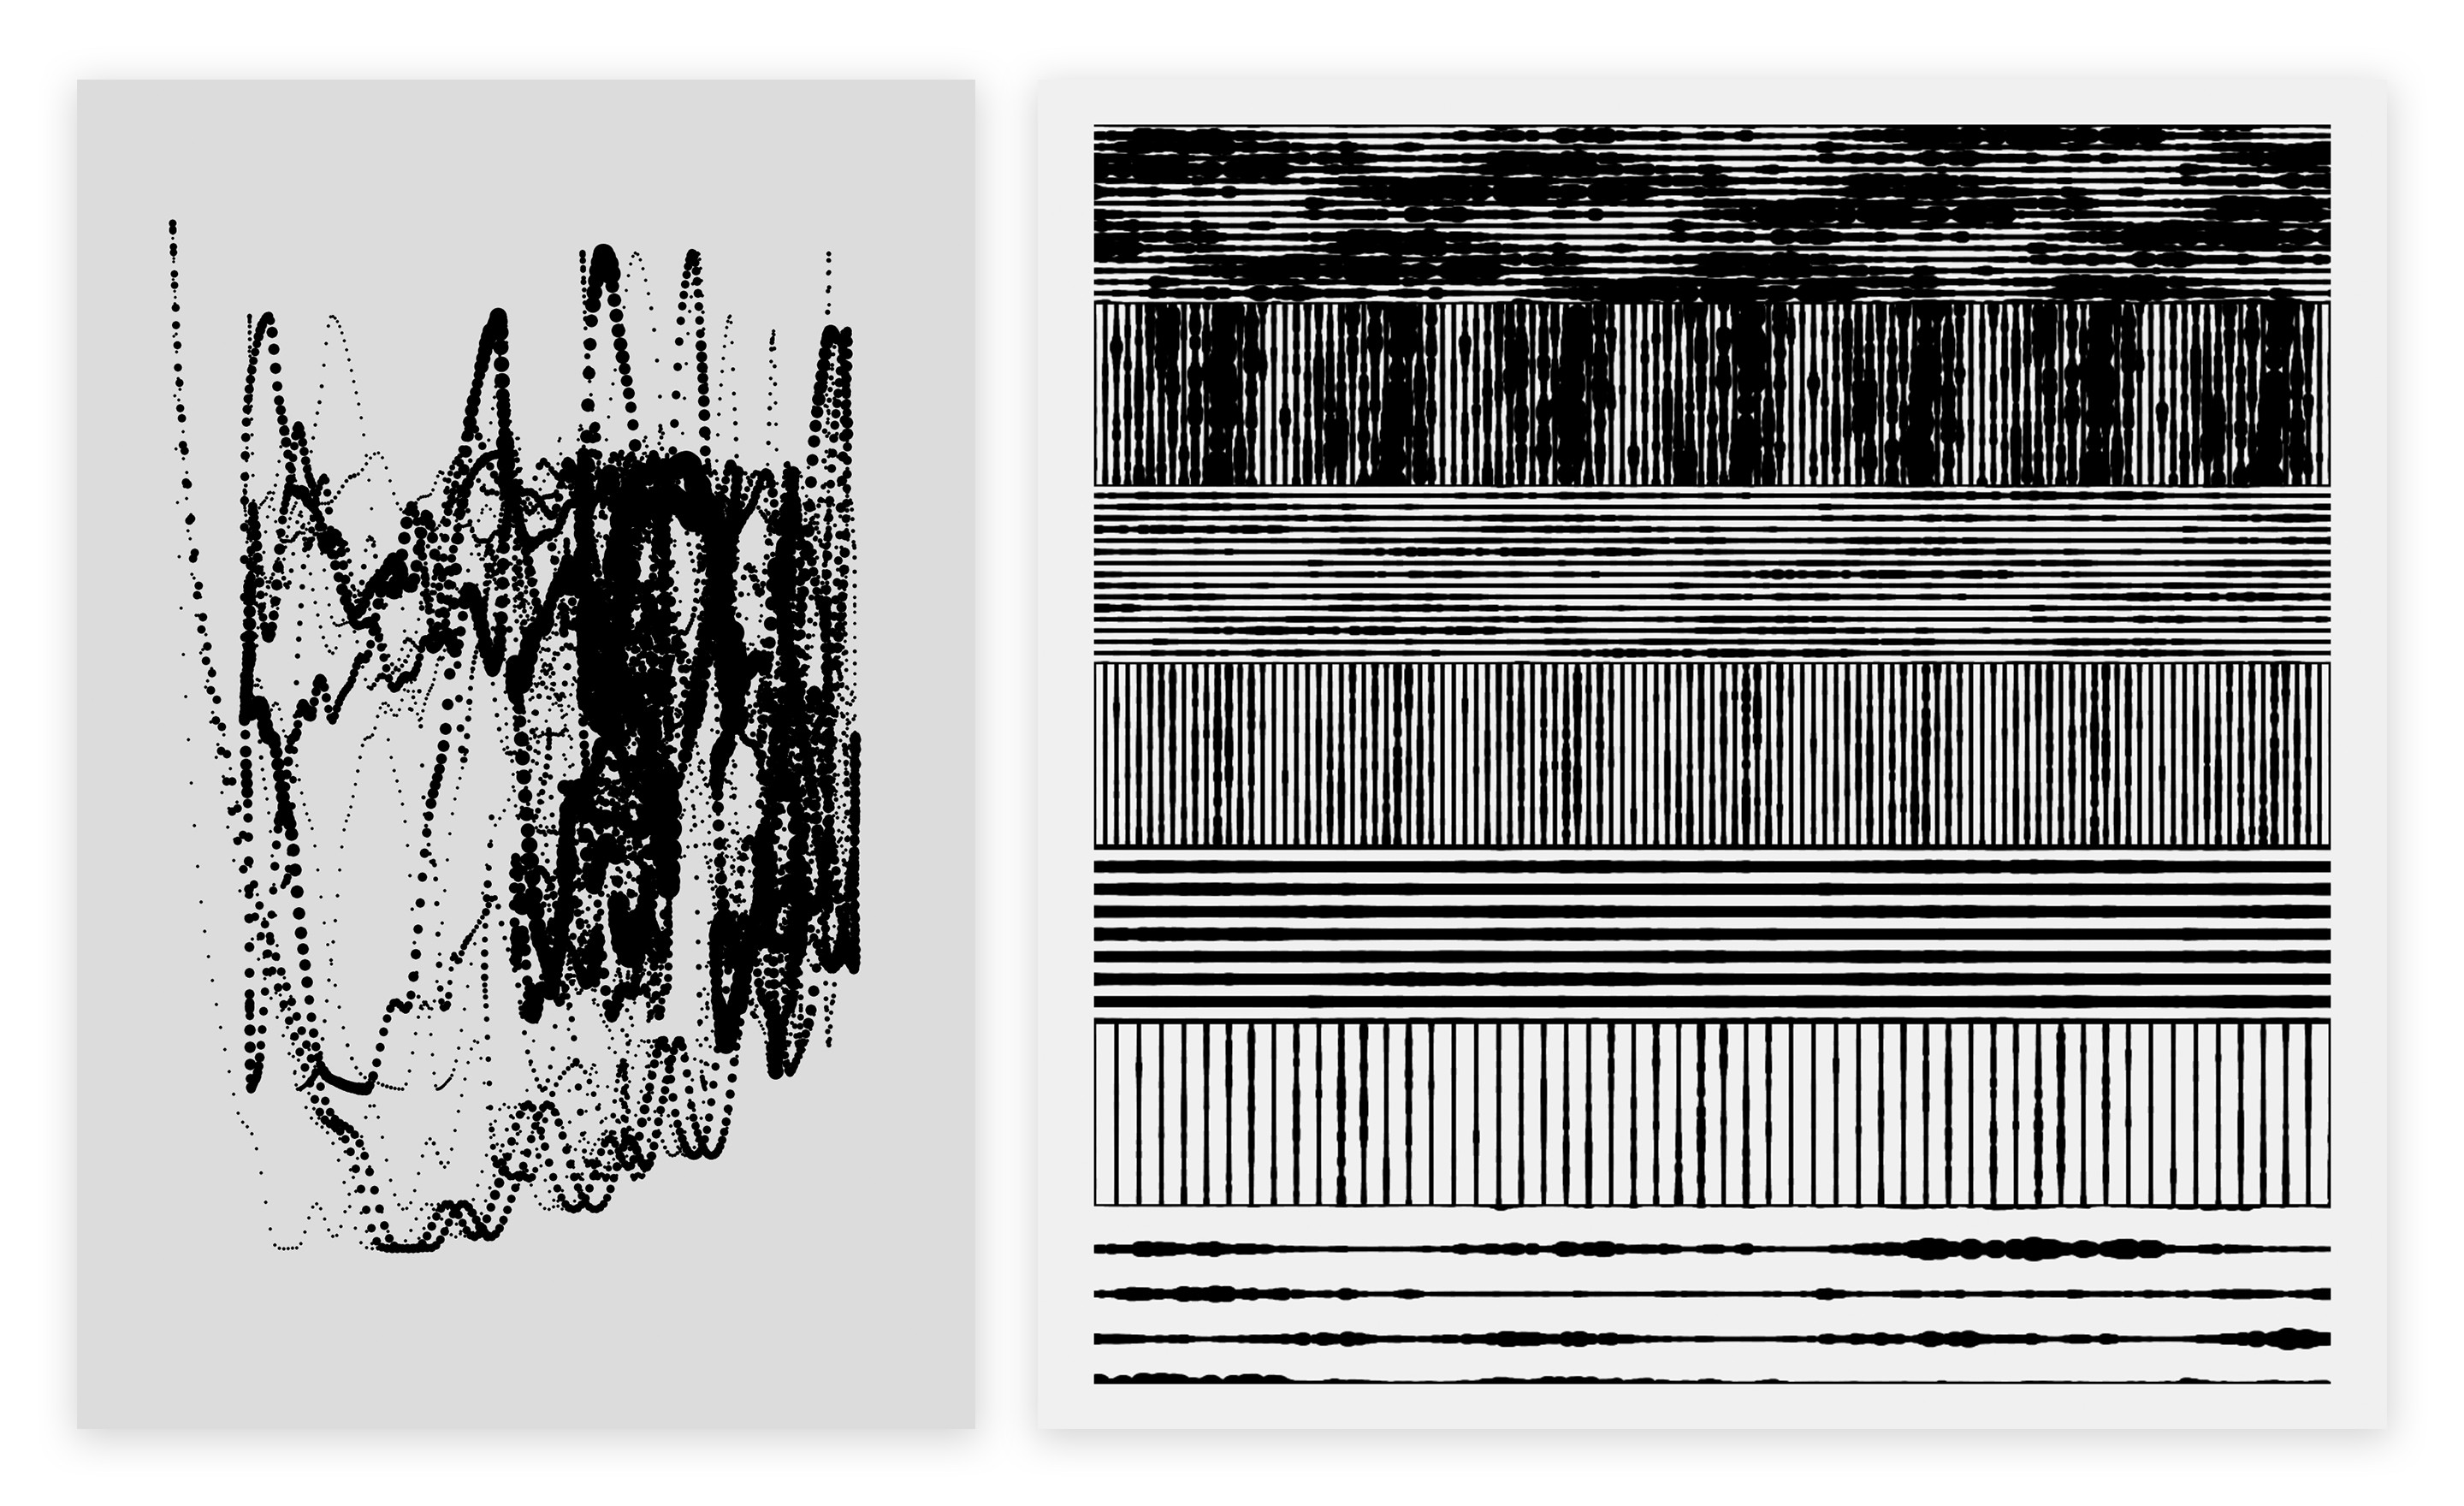 Left image is a series of spattering strings of circles layered overtop one another. Right image is a gridded pattern of lines and circles that change size based on sound amplitude as they move across the canvas.